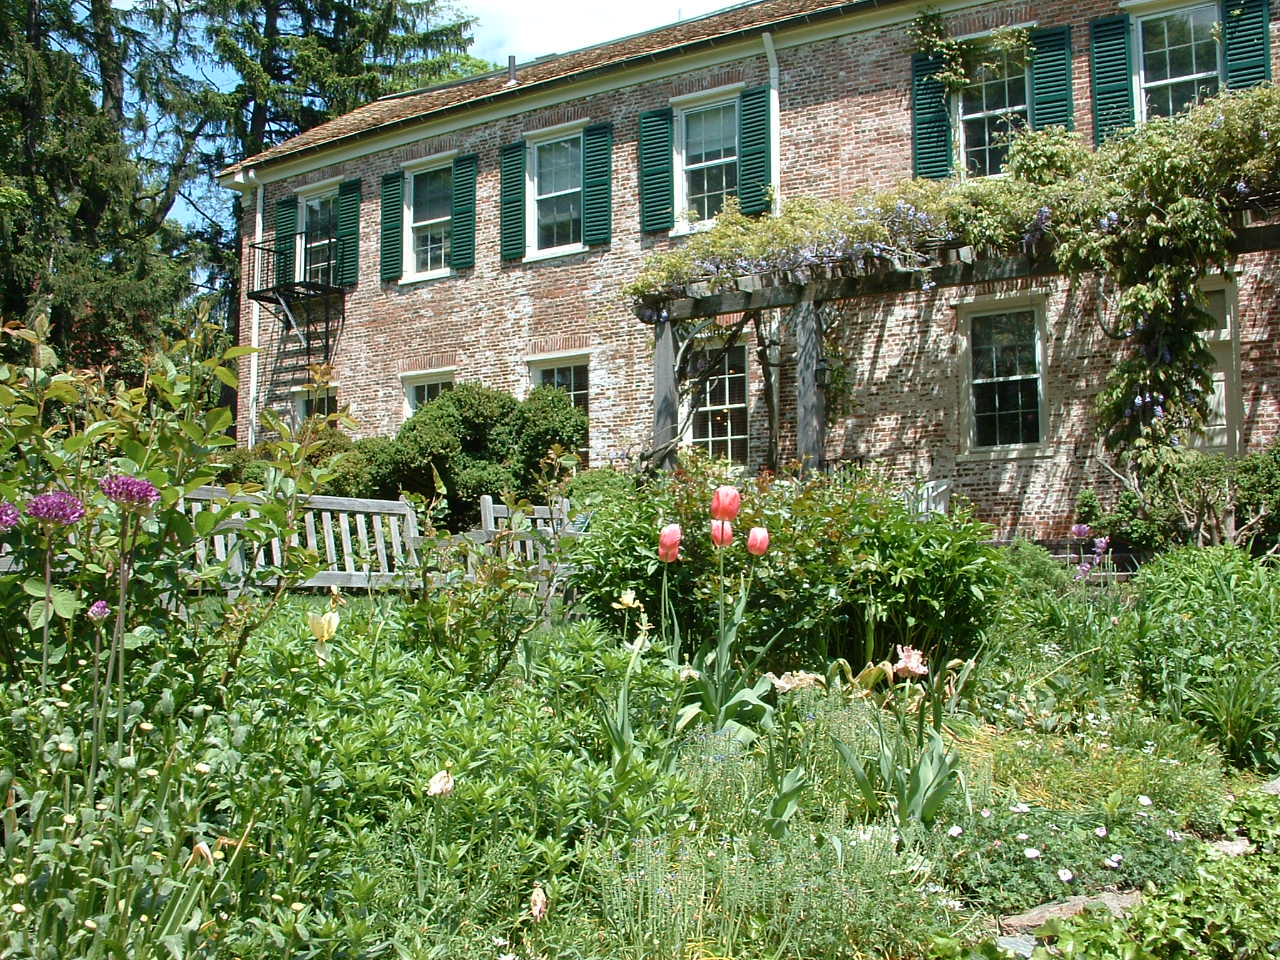 Spring Gardens Of Macculloch Hall Historical Museum, Morristown, New  Jersey, Contact Us For